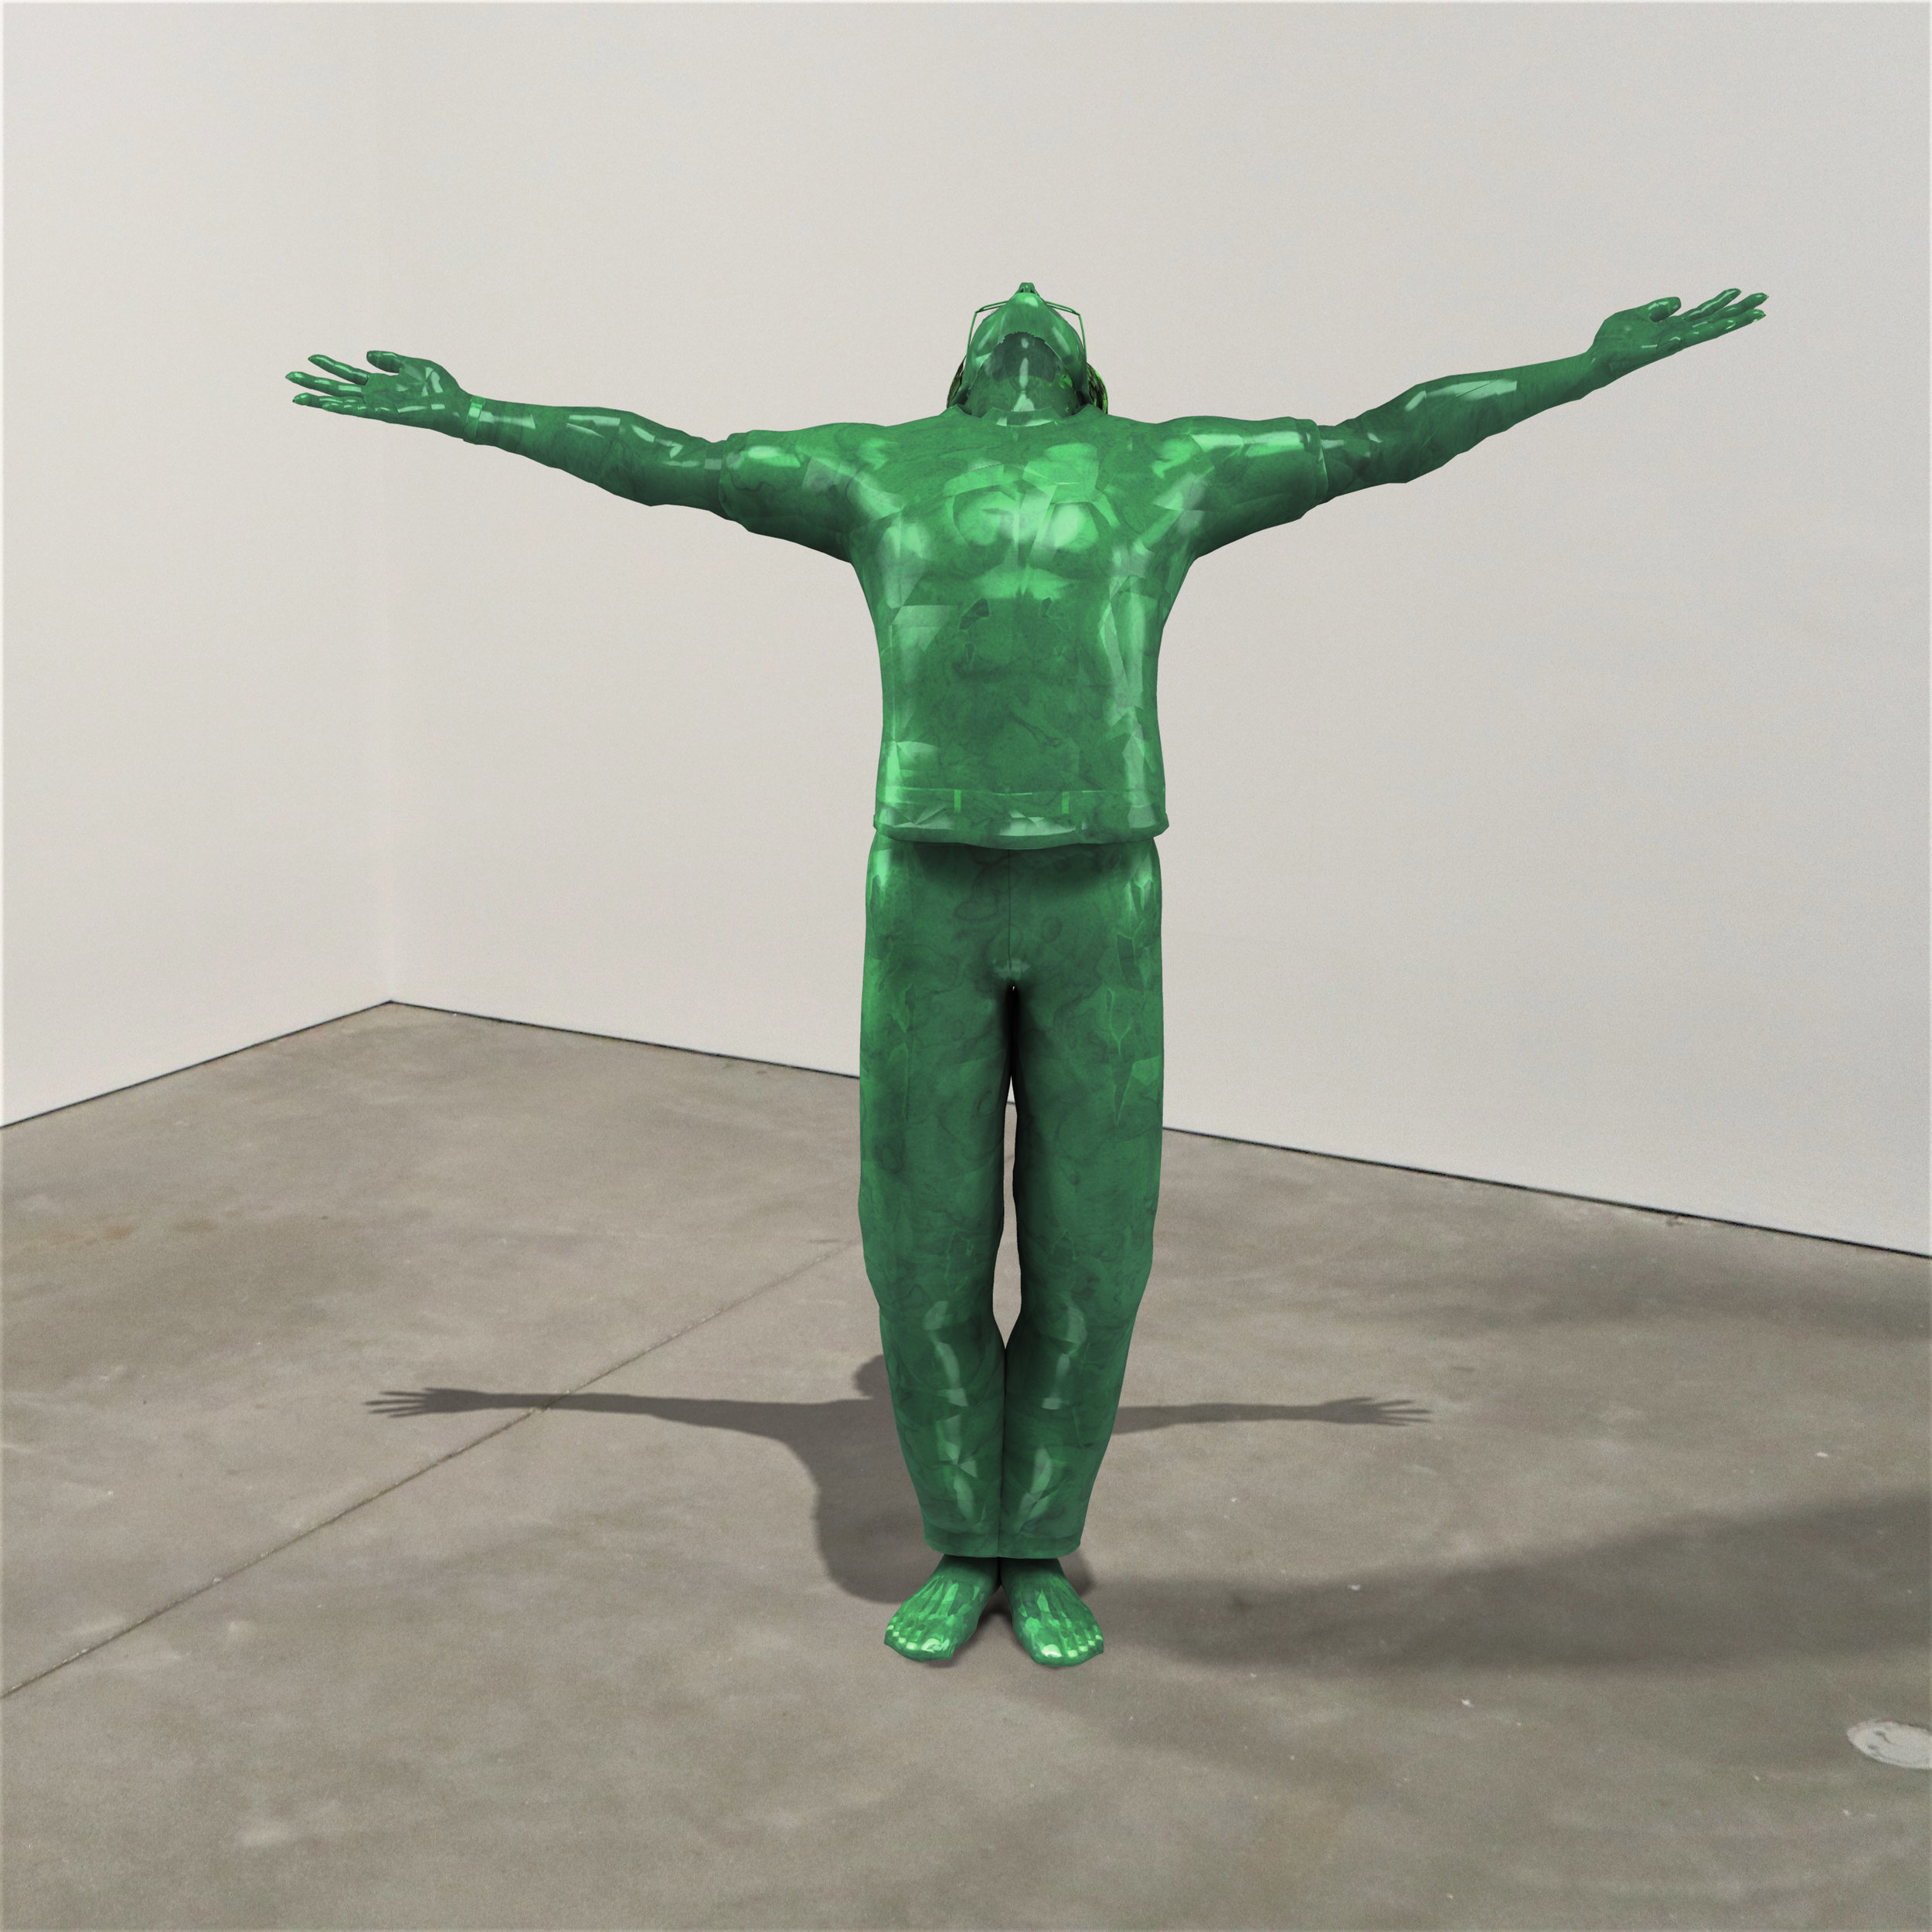 """Jaded,"" jade, Institute of Contemporary Art, Boston   2018  JPG  During an installation at the Institute of Contemporary Art in Boston, viewers were invited to imagine themselves as statues in the ICA's permanent collection. Participants were photographed posing as a statue they felt represented themselves, created a name for their fictional statue, and selected a stone from which their statue would be made. Professional and amateur digital artists were commissioned to create renderings of the statues, which were superimposed on photos of the ICA's permanent collection gallery space."